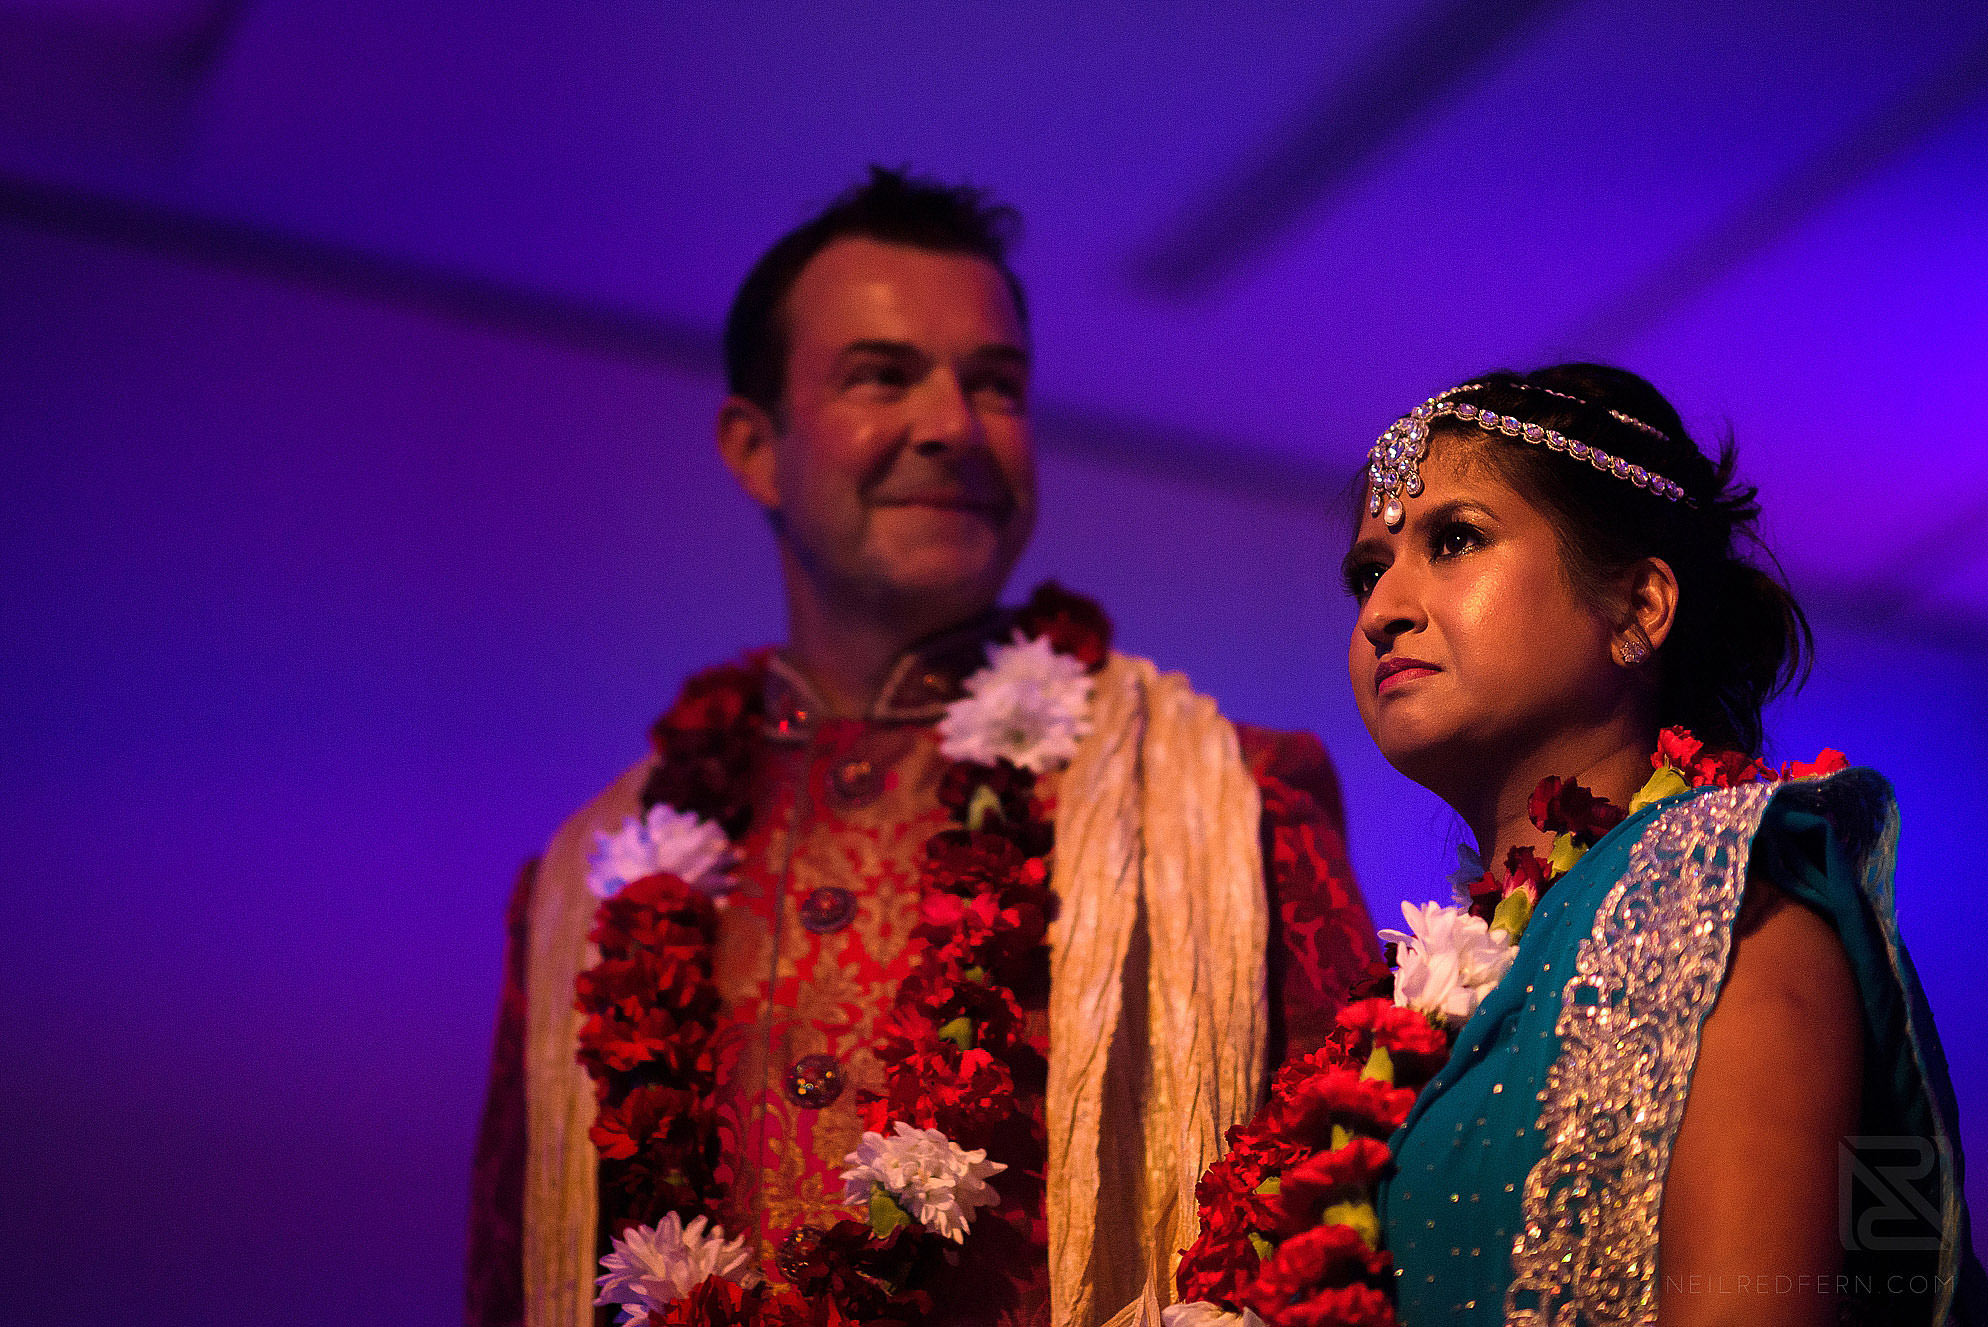 Hindu bride and groom during wedding ceremony